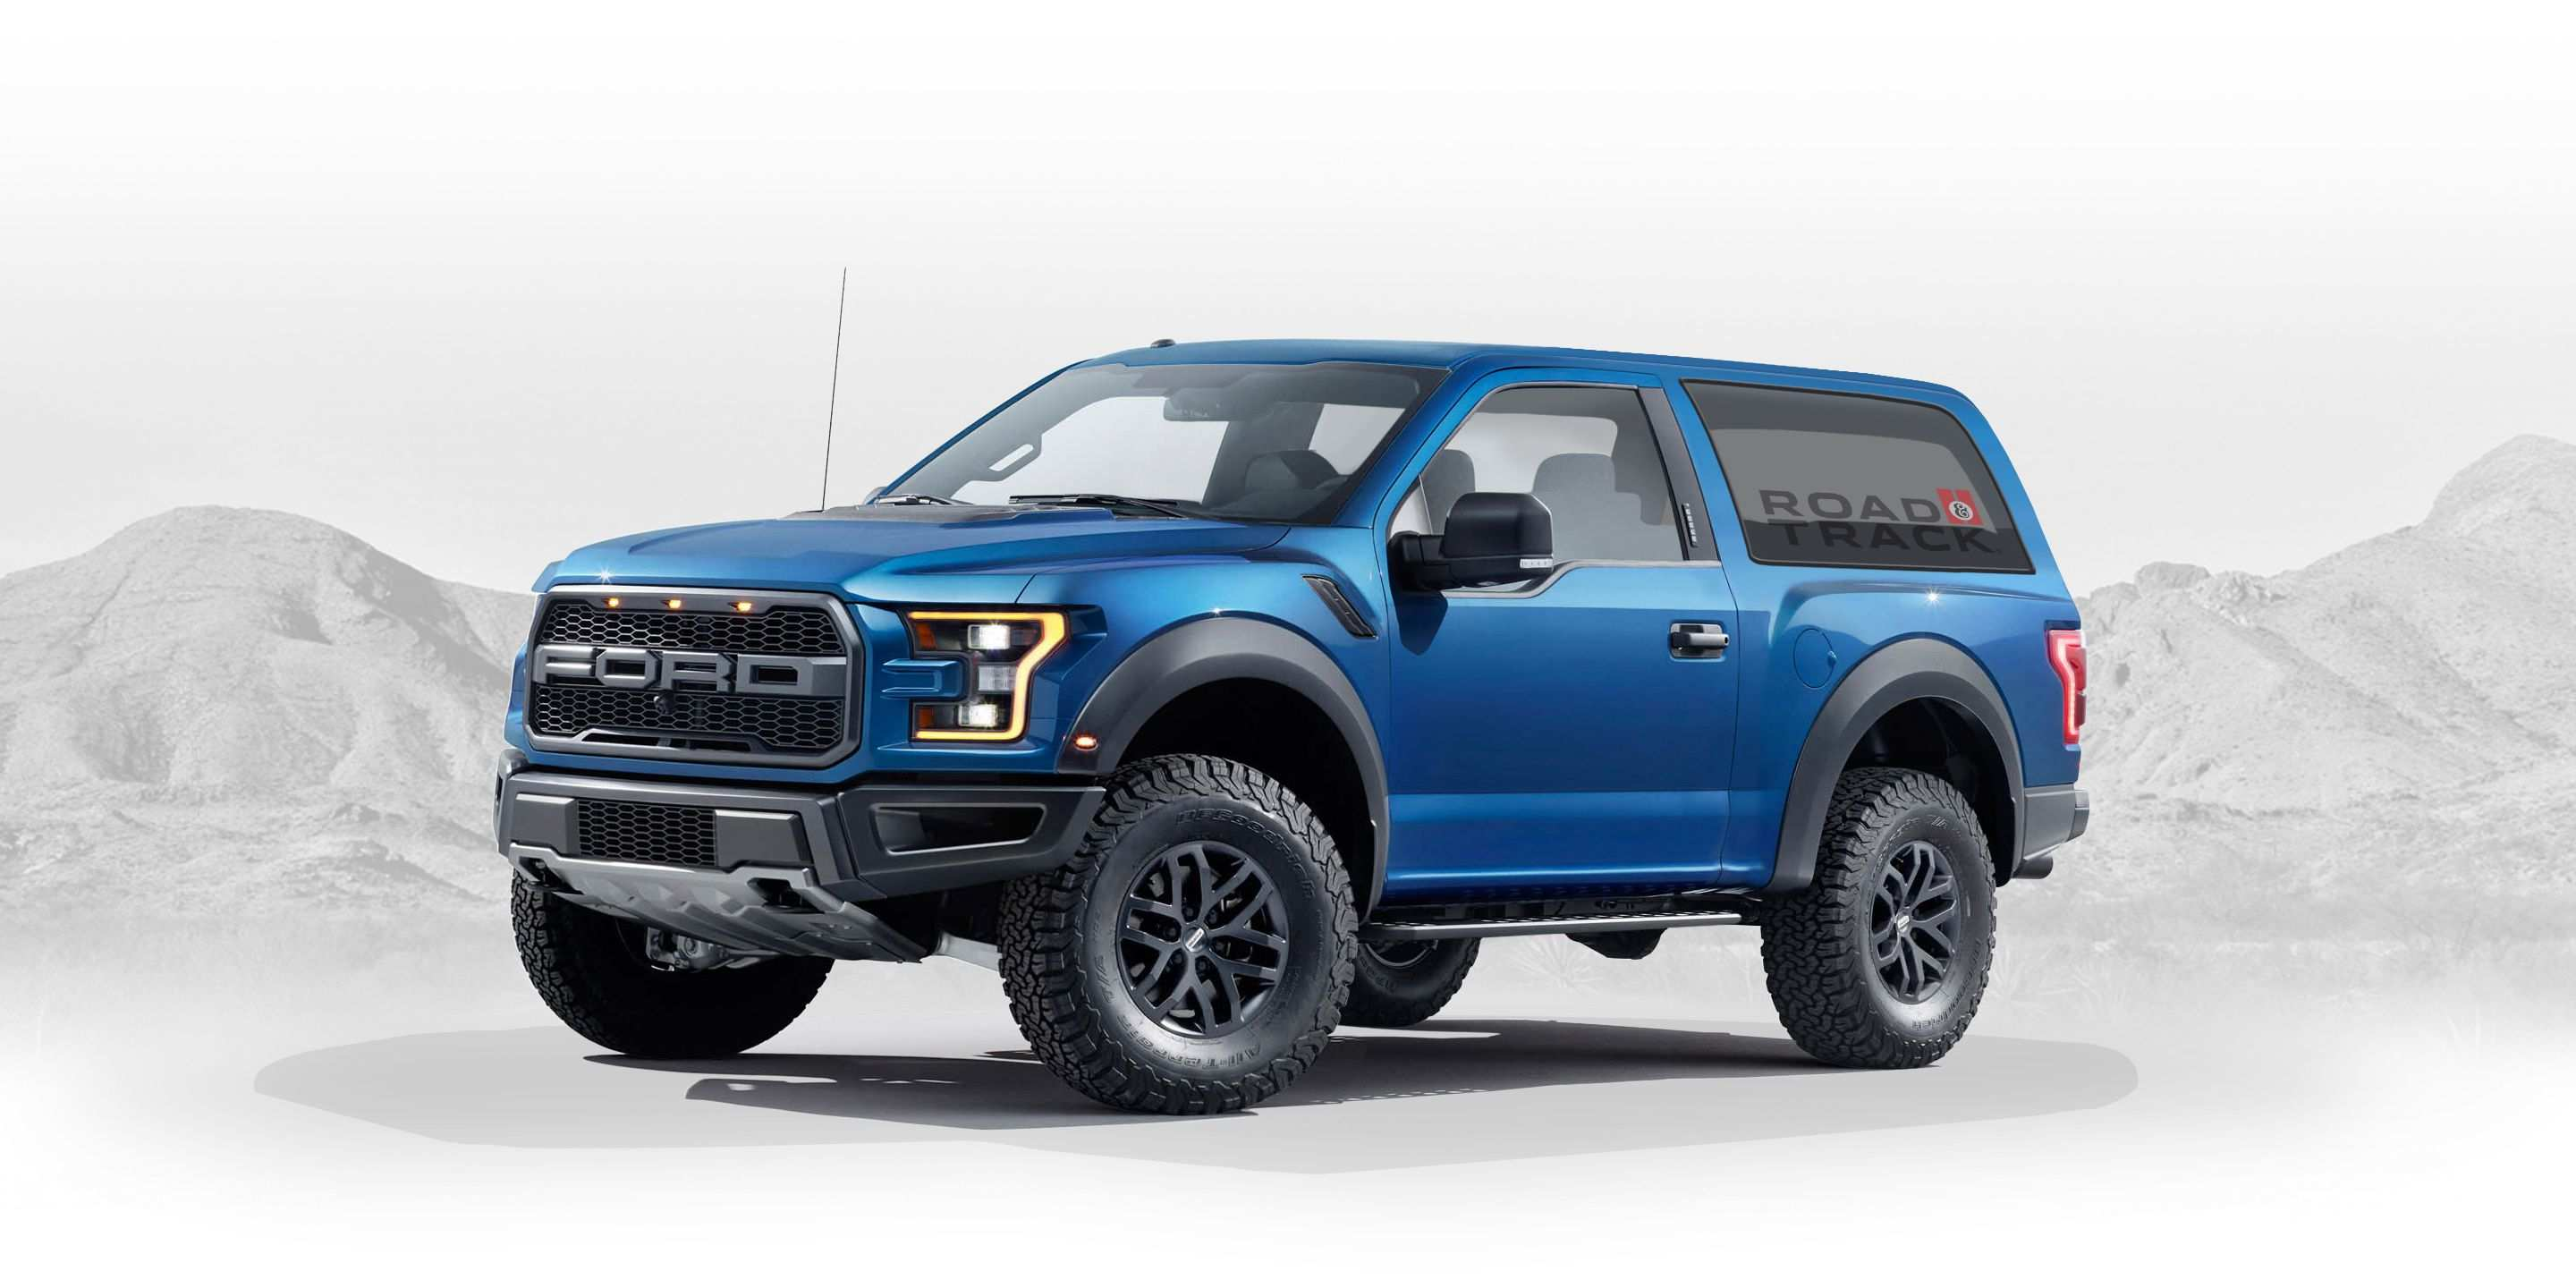 26 All New 2020 Ford F100 Spy Shoot with 2020 Ford F100